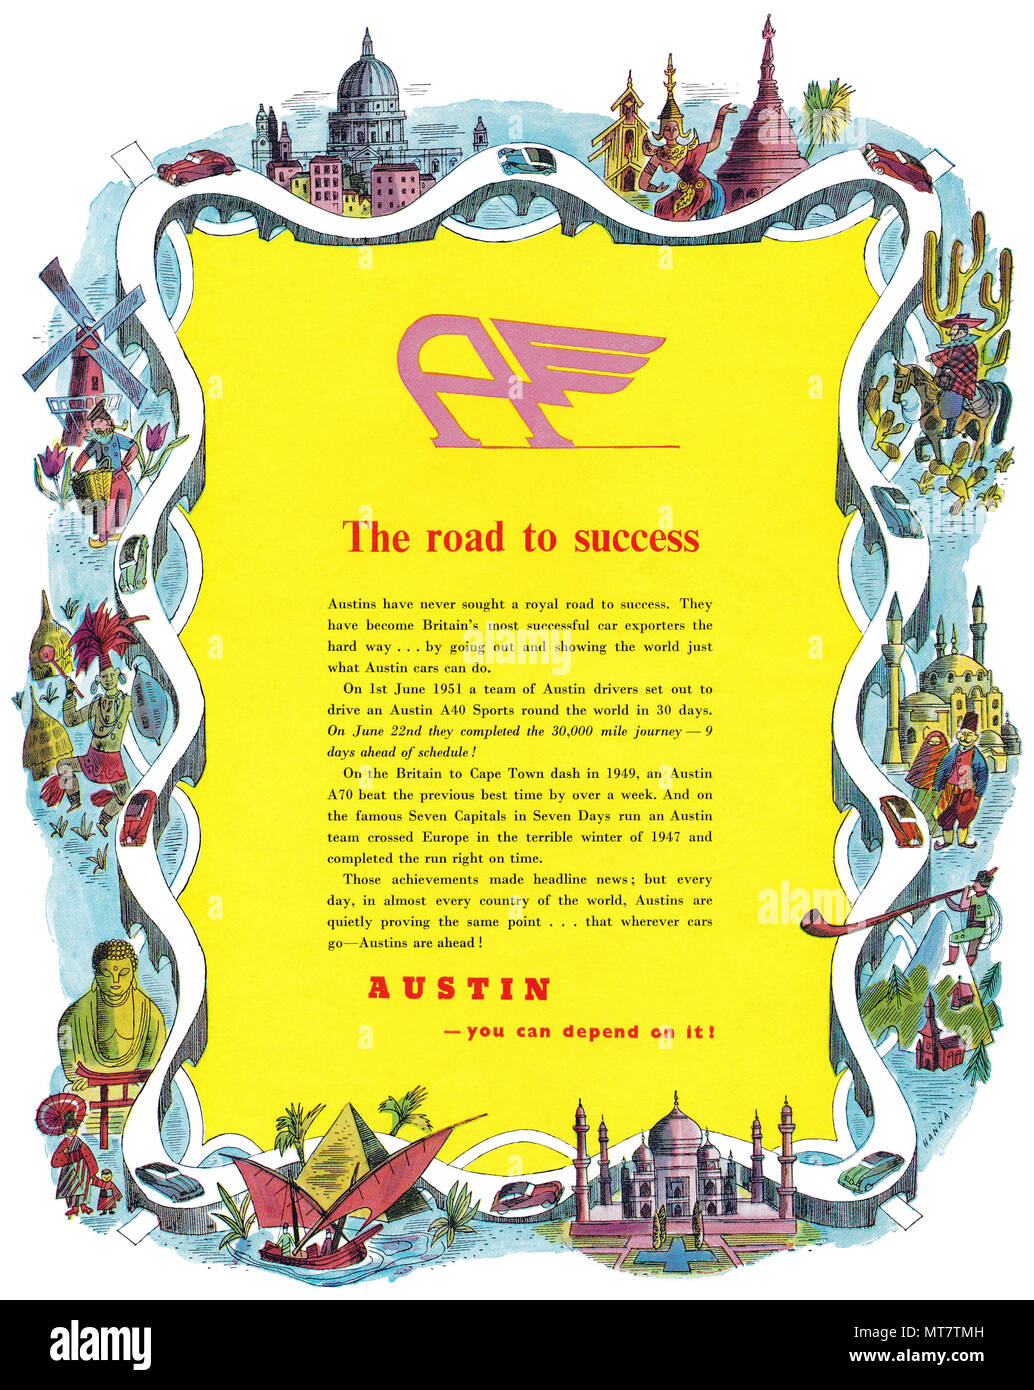 1951 British advertisement for Austin motor cars. - Stock Image